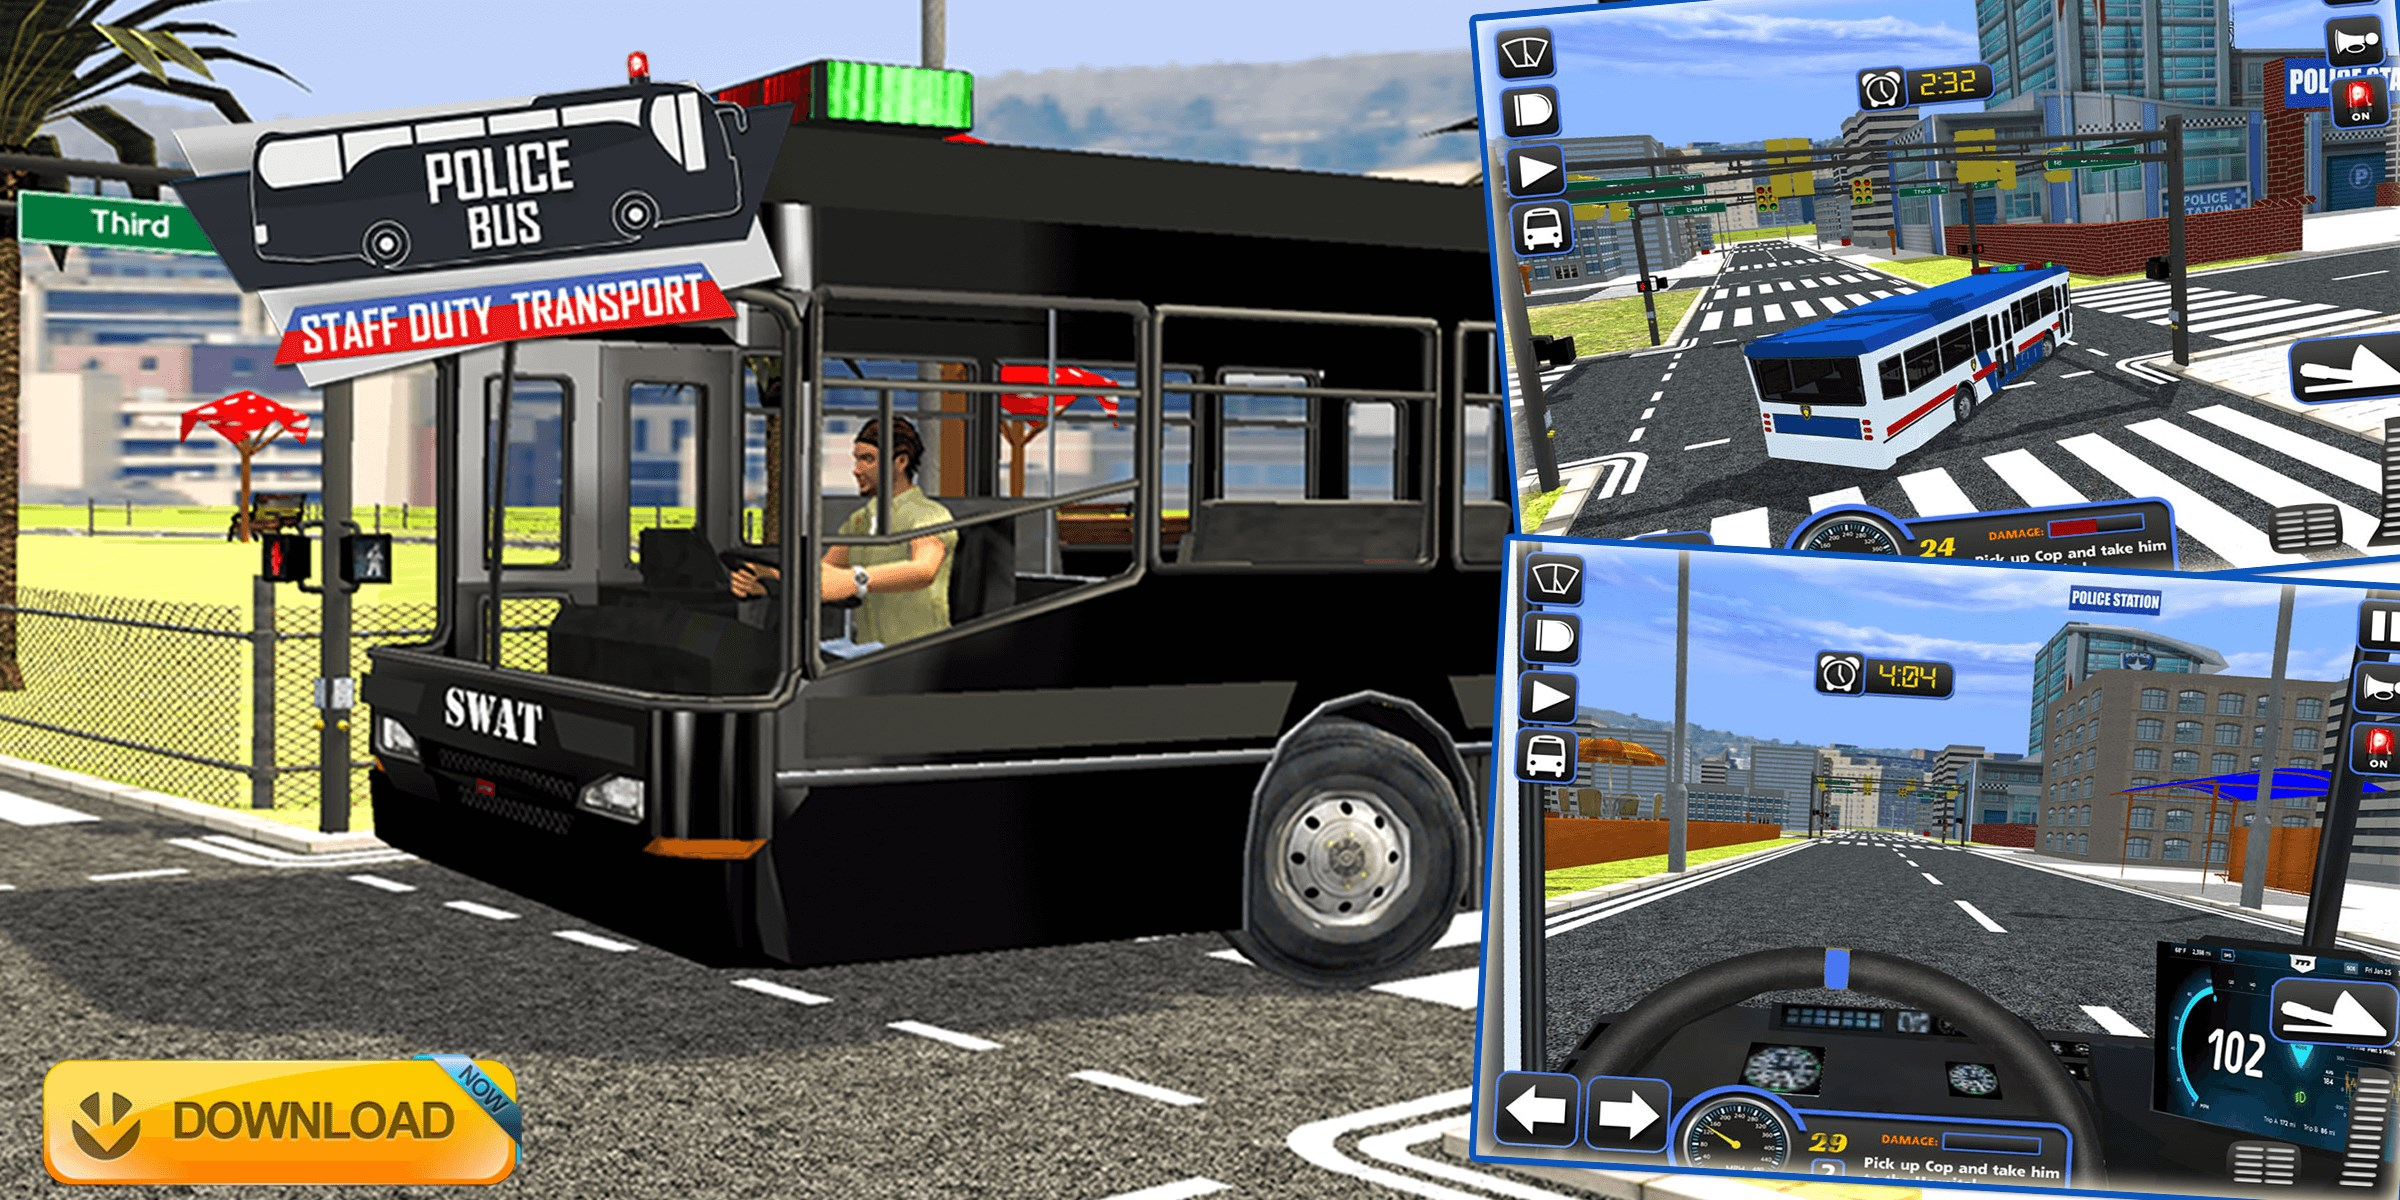 f87c07e6c Get Police Bus Staff Duty Transport 3D - Pick and Drop - Microsoft Store